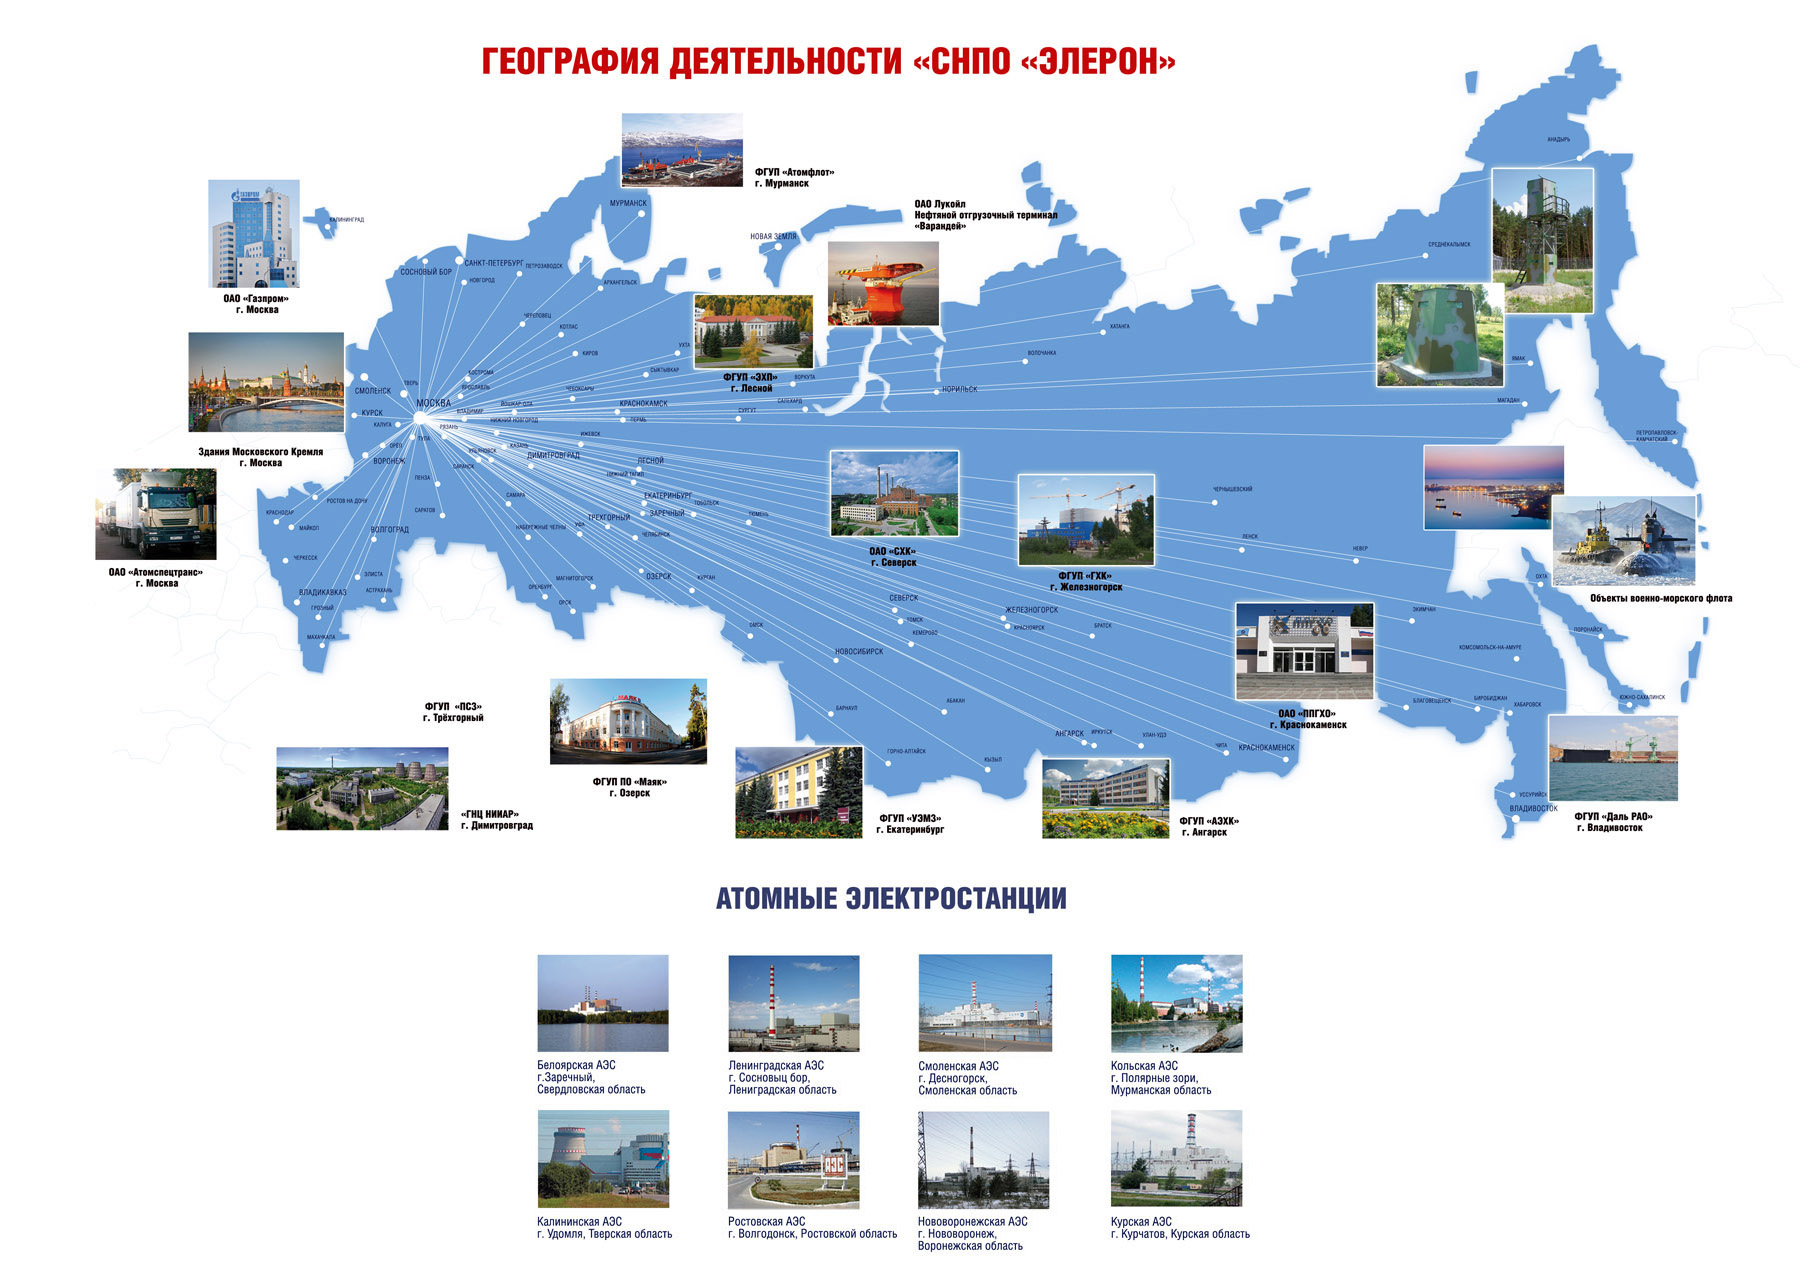 http://www.eleron.ru/files/img/about-company/geo-map-Eleron-2015-1.jpg